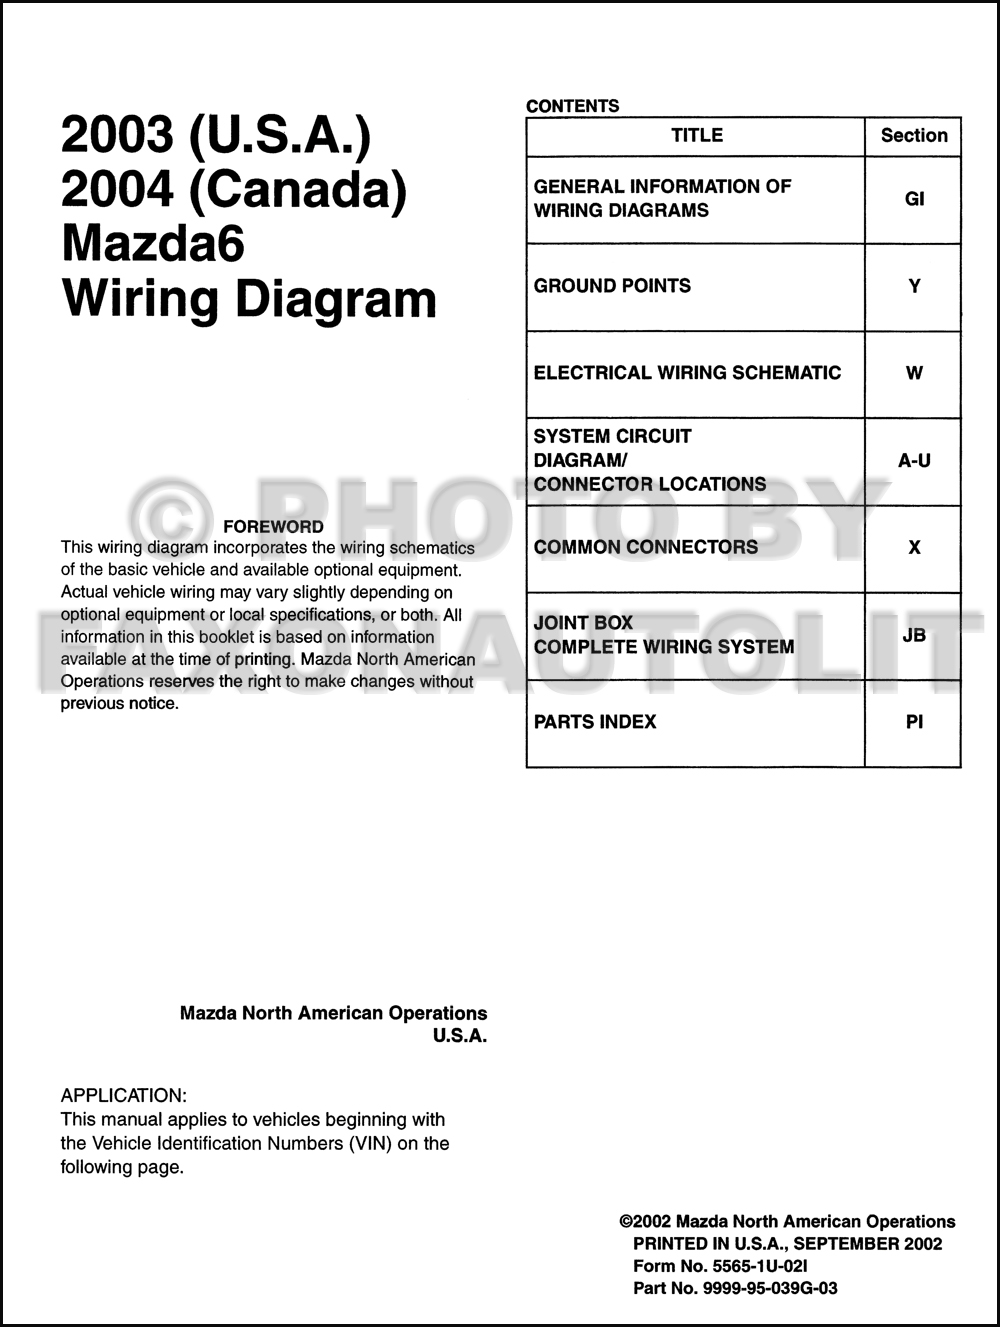 2003 Mazda Mpv Wiring Diagram Library Mazda6 Original And 2004 Canada 6 Rh Faxonautoliterature Com 2000